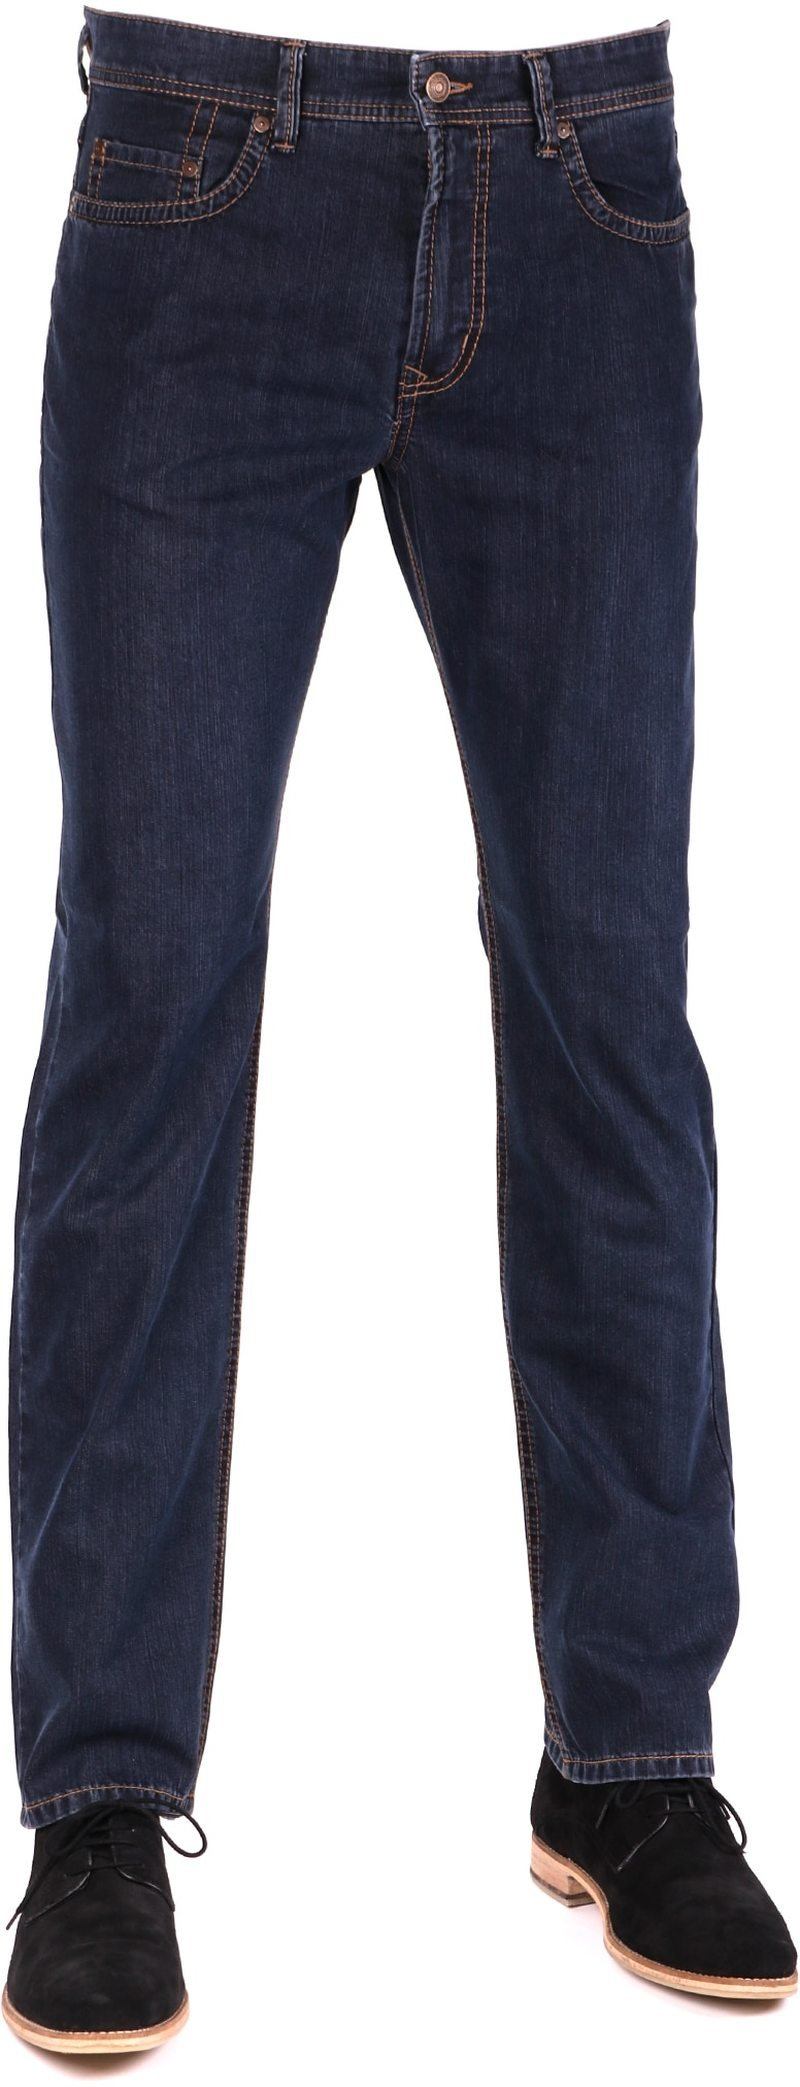 Mac Jeans Ben Night Stone H098 photo 0